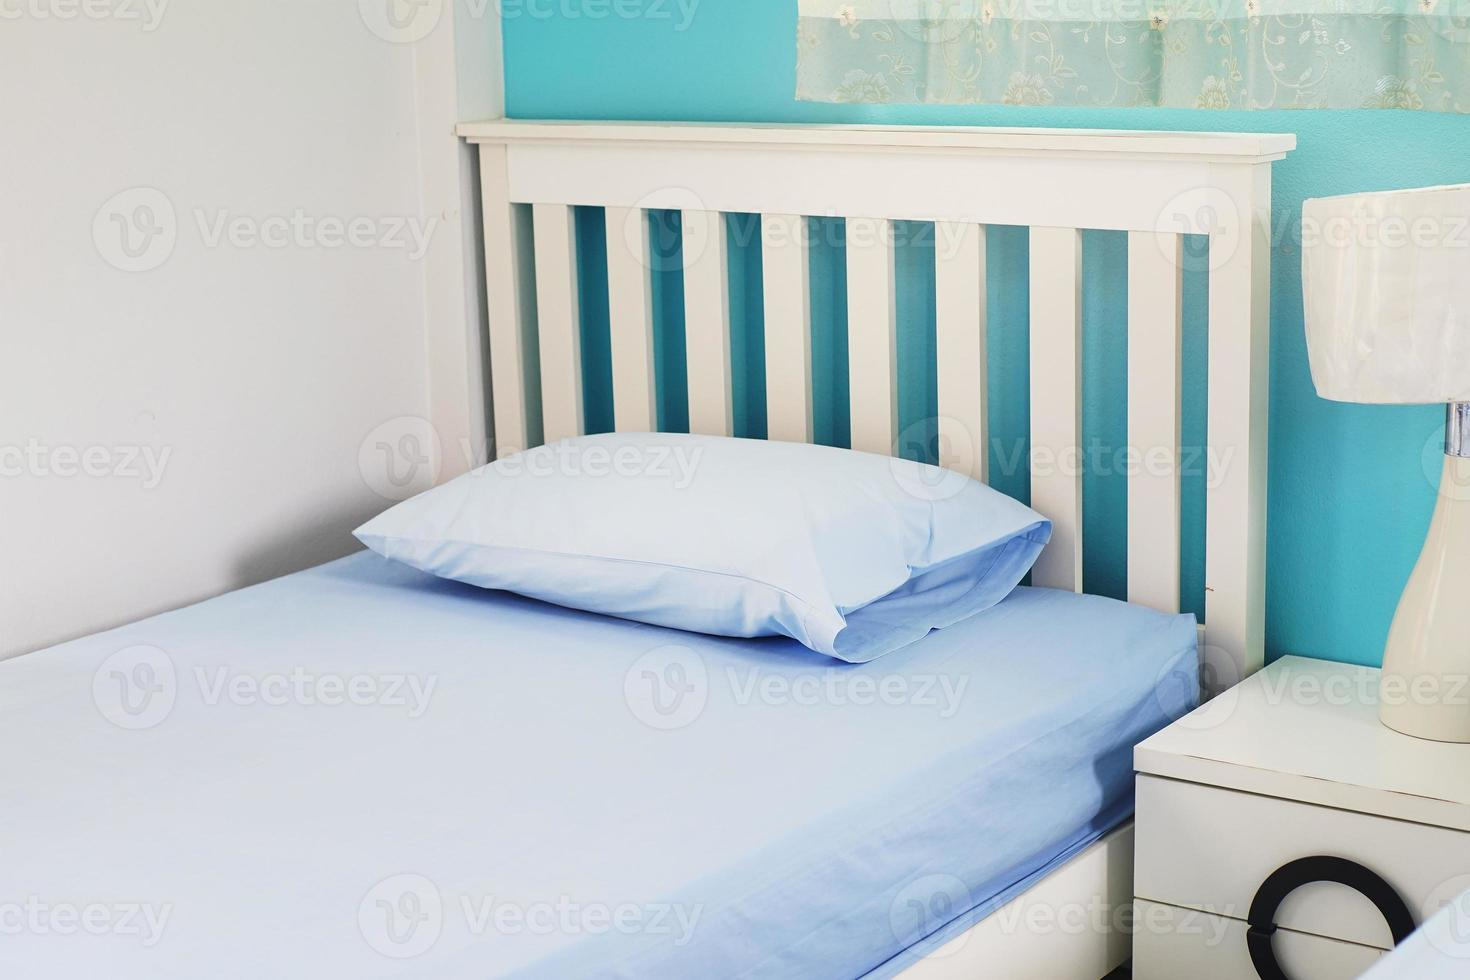 light blue pillow on white  bed in bedroom photo